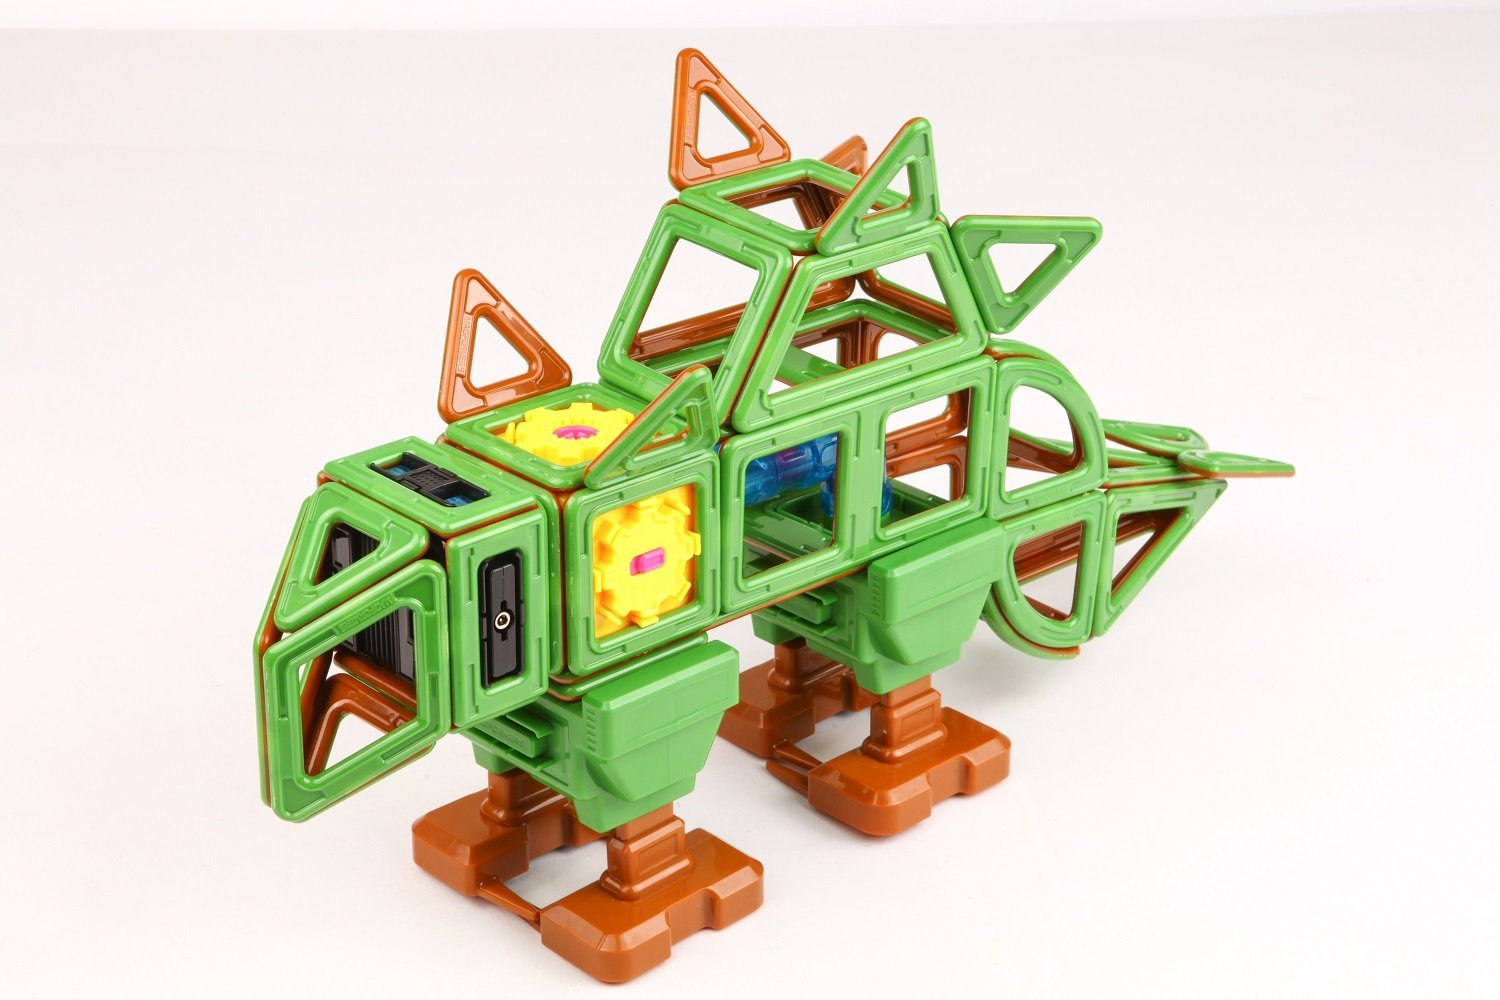 Magformers ''Walking Dinosaur Magnetic Toy (81-Piece) by Magformers (Image #3)